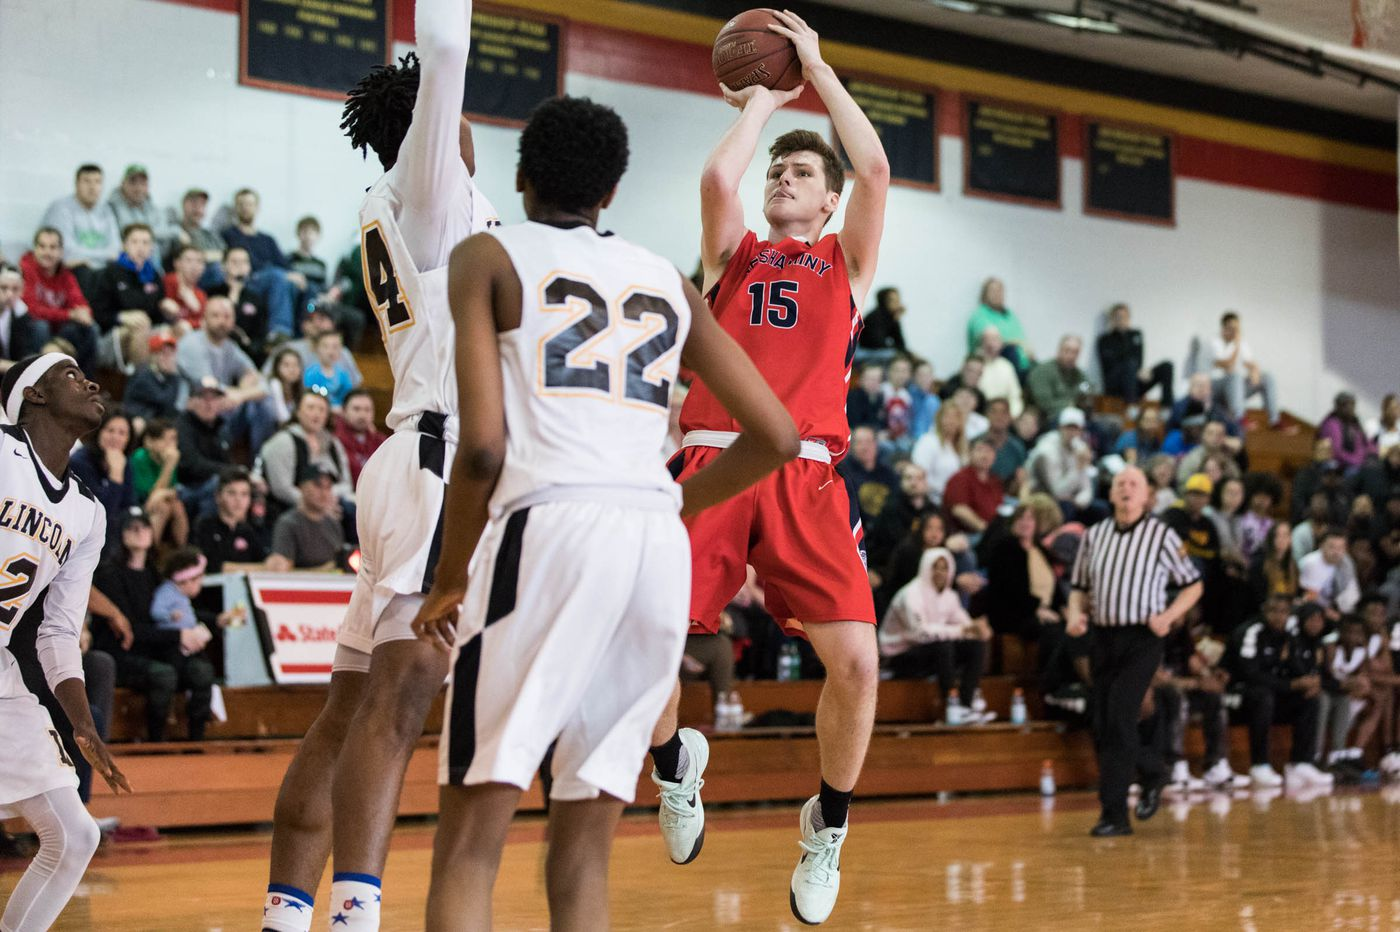 Chris Arcidiacono commits to Villanova, following older brother Ryan